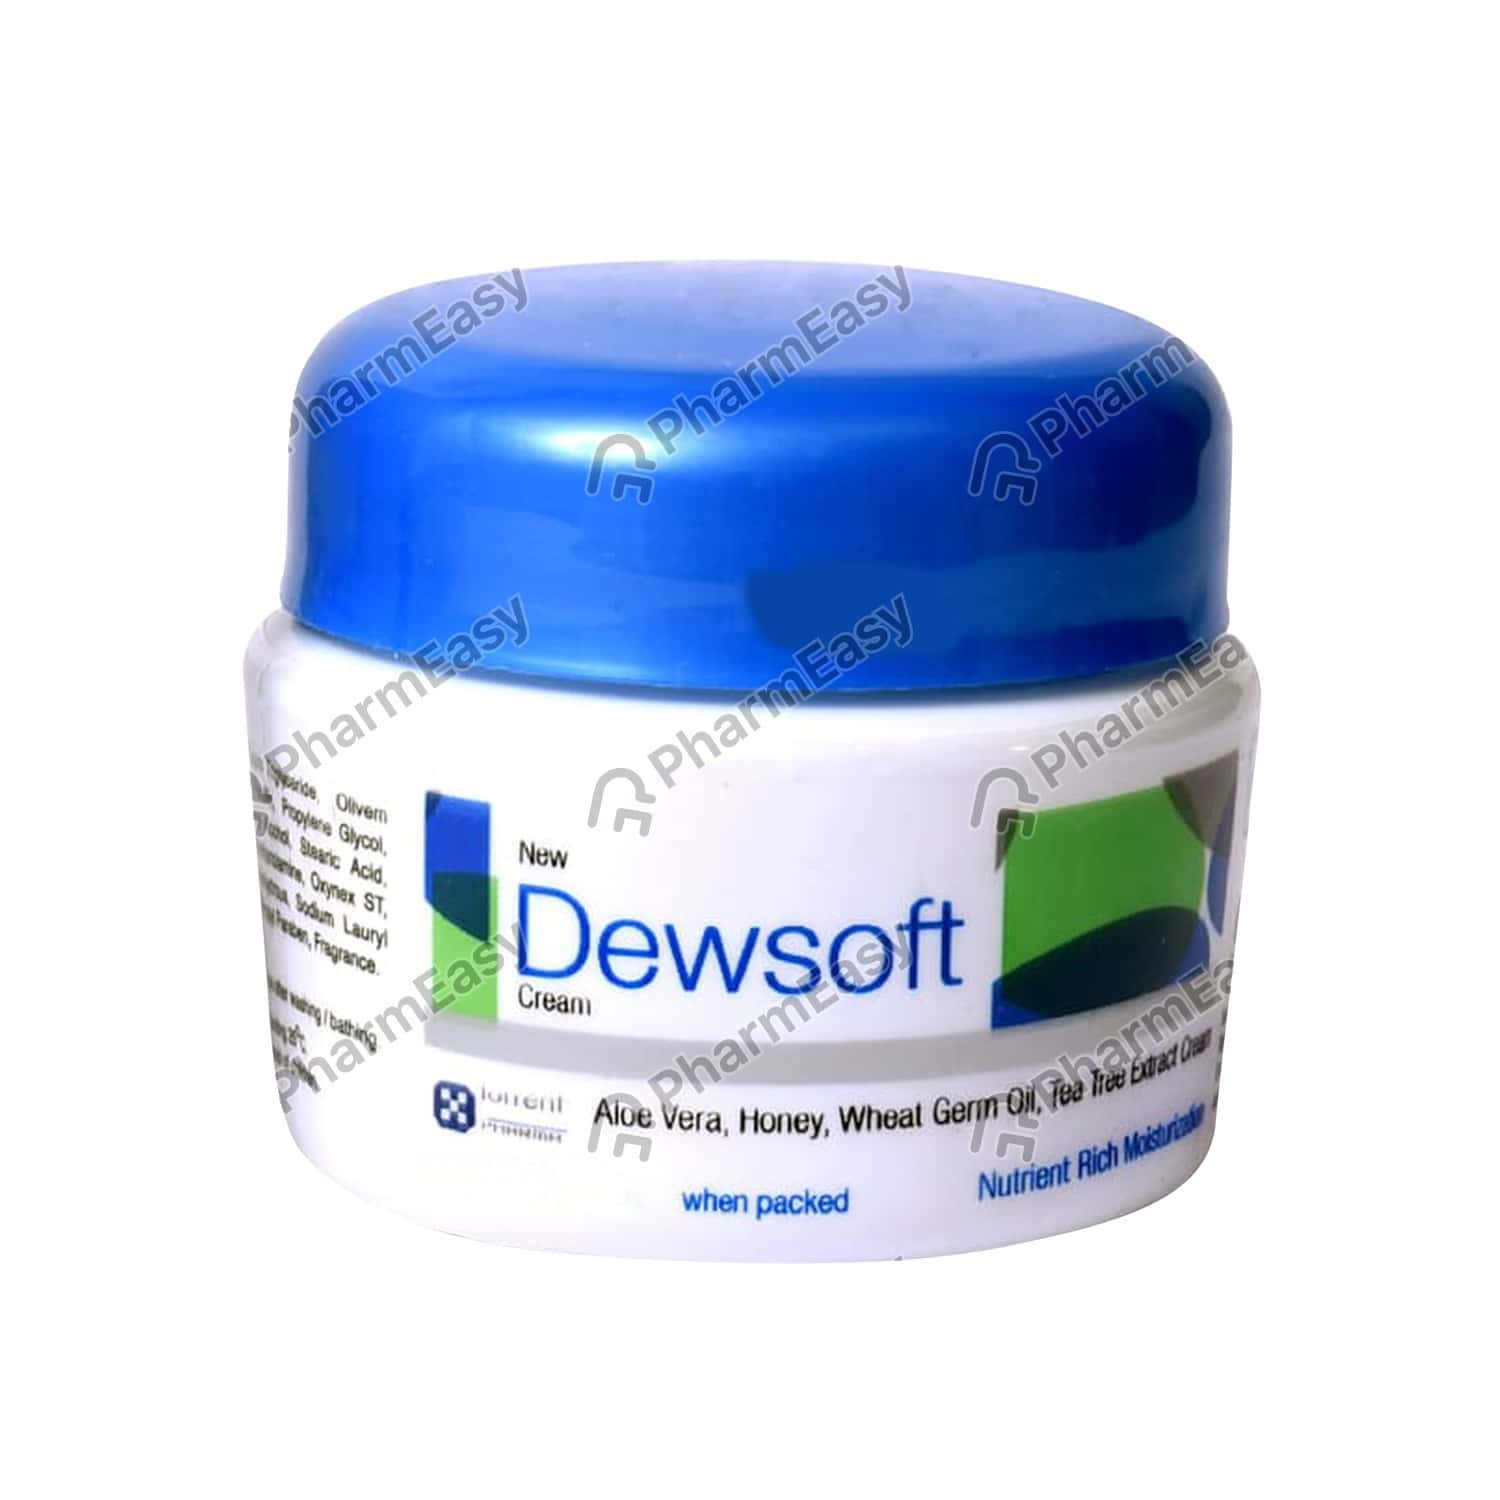 New Dewsoft Cream 150gm